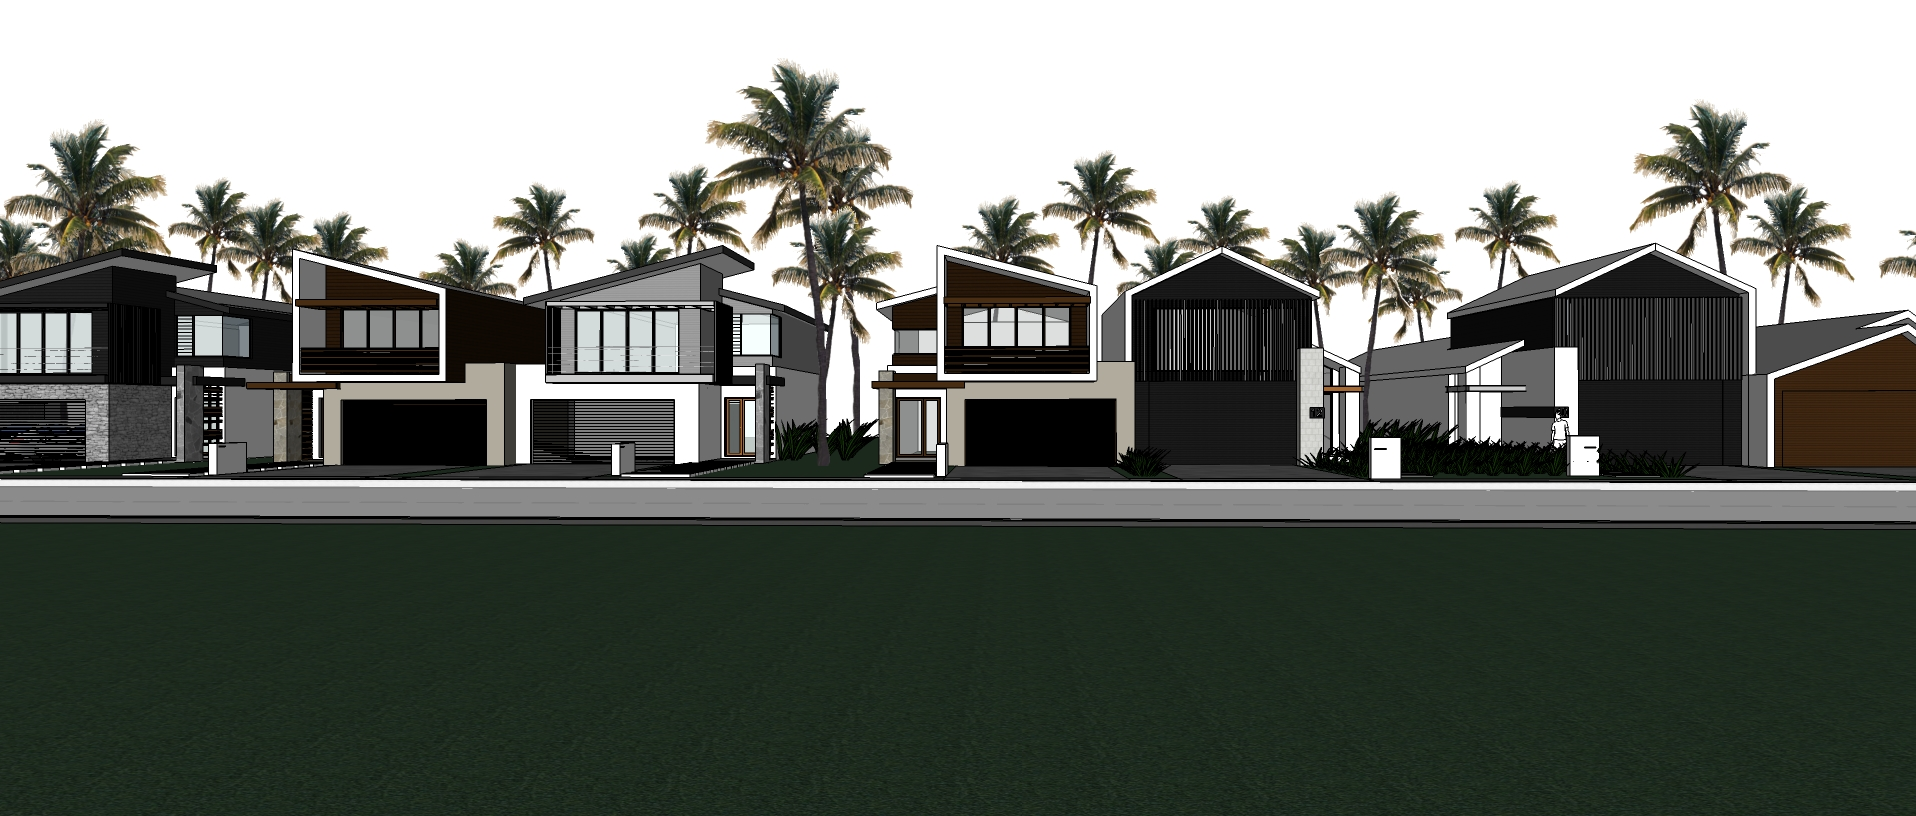 Streetscape Plan - Sketch Up